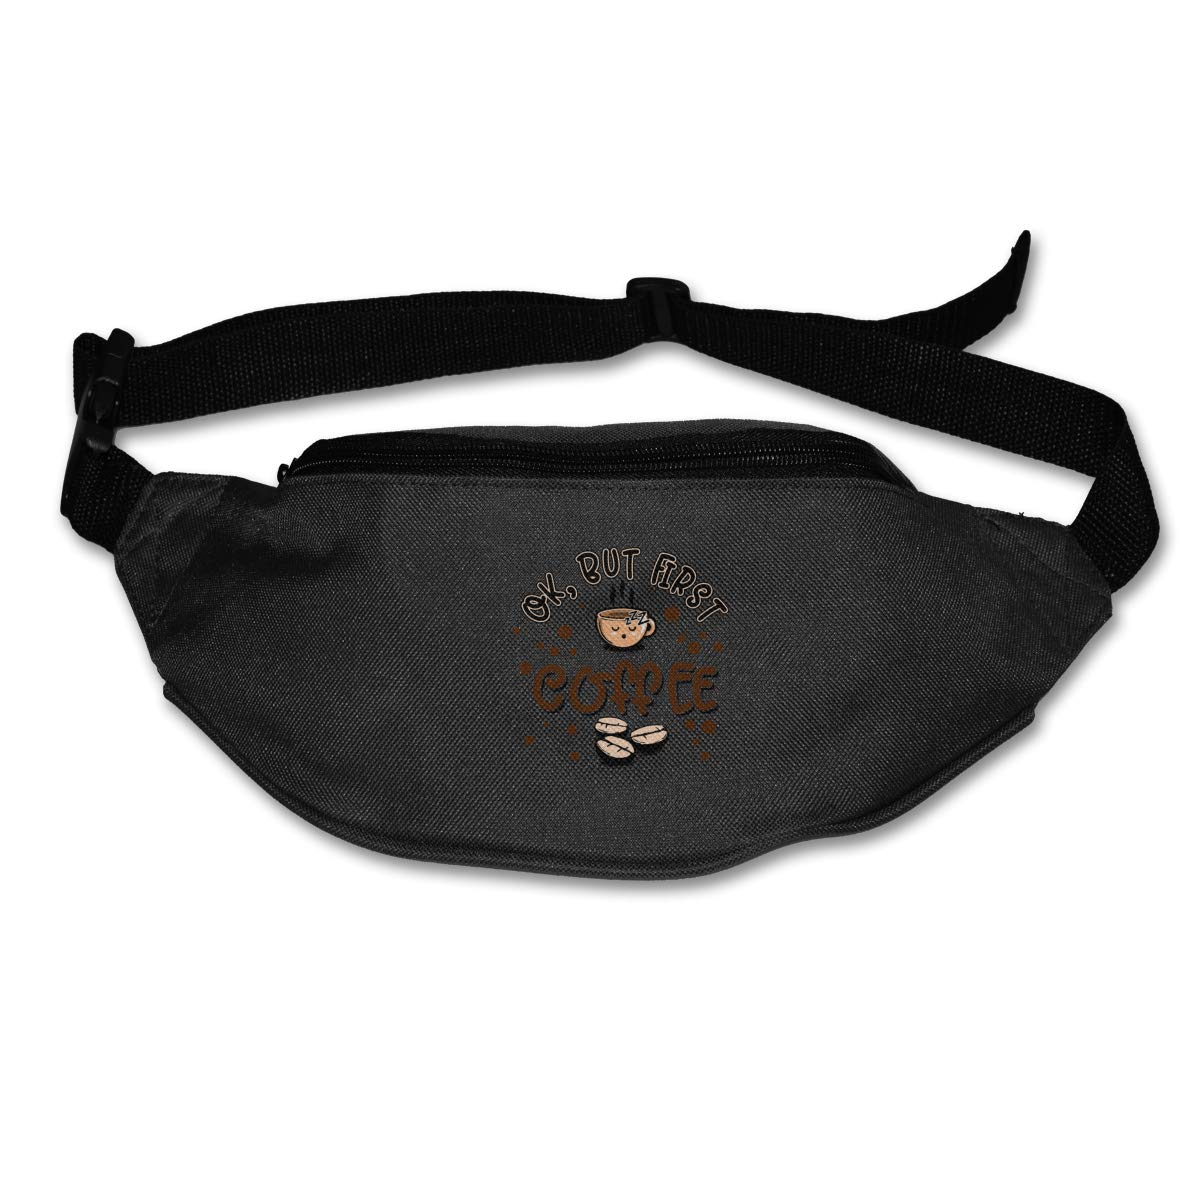 OK BUT FIRST COFFEE Sport Waist Bag Fanny Pack Adjustable For Run